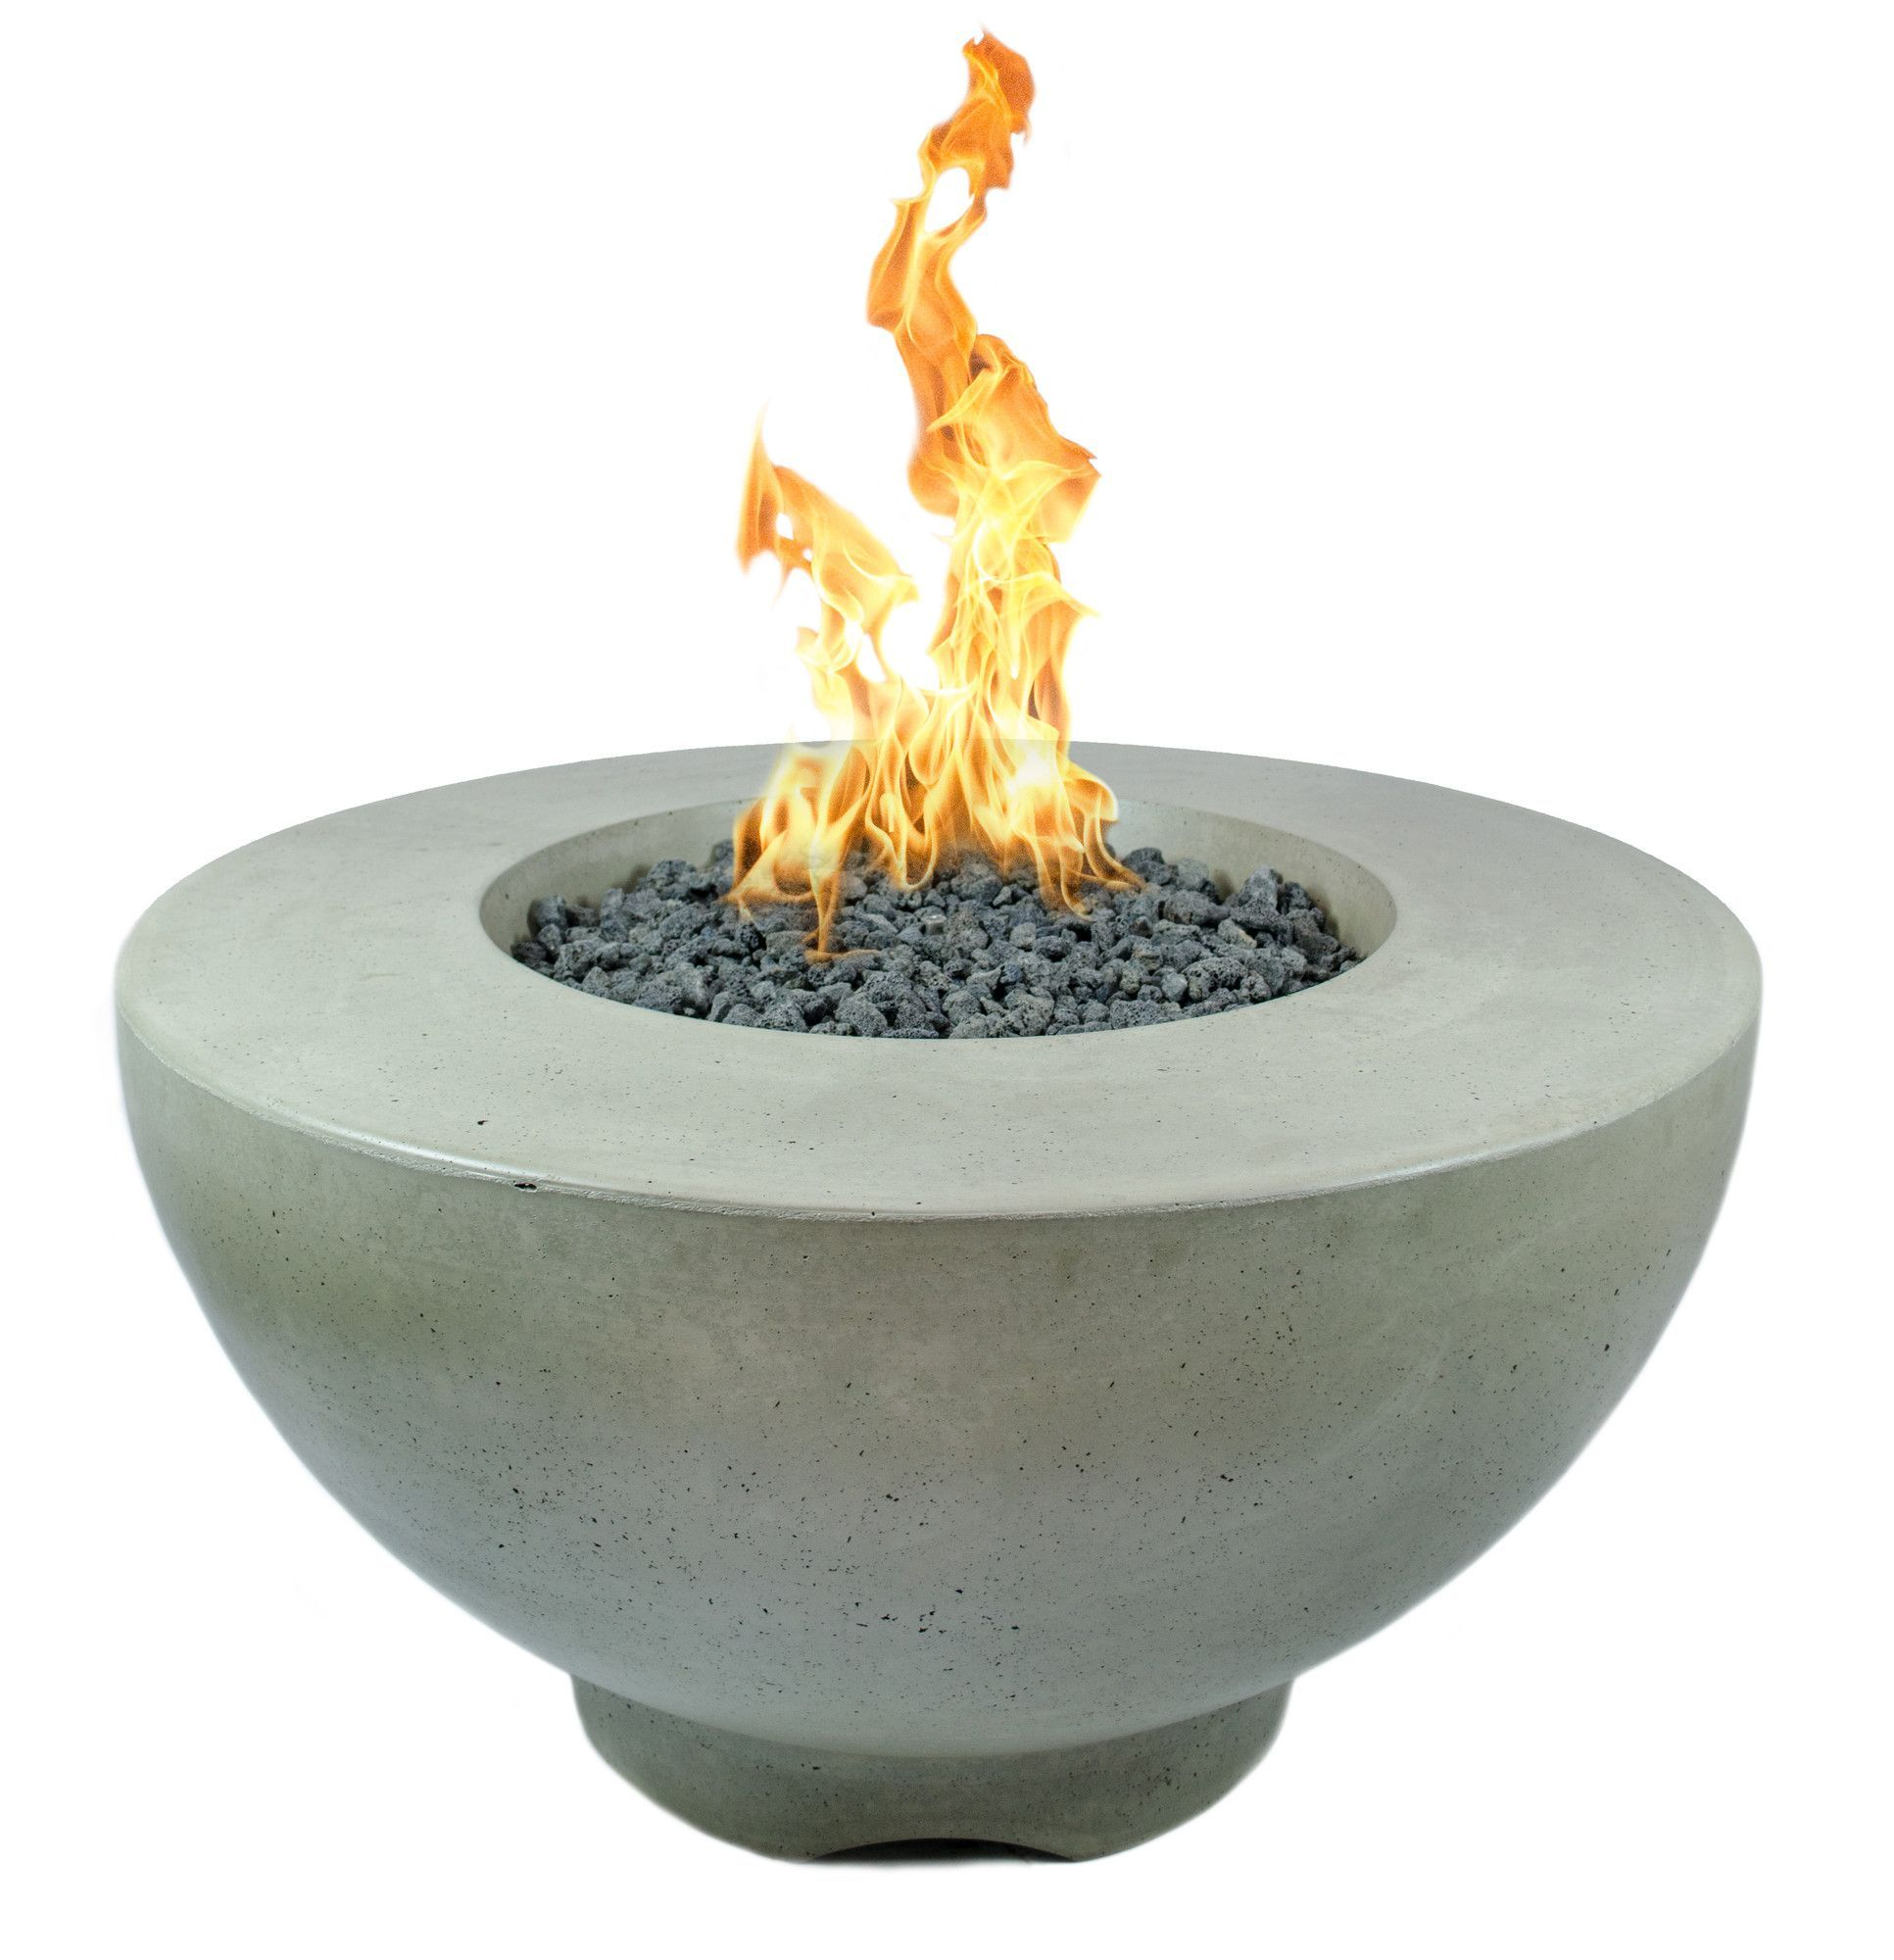 Sienna concrete natural gas fire pit gas fire pits gas fires and